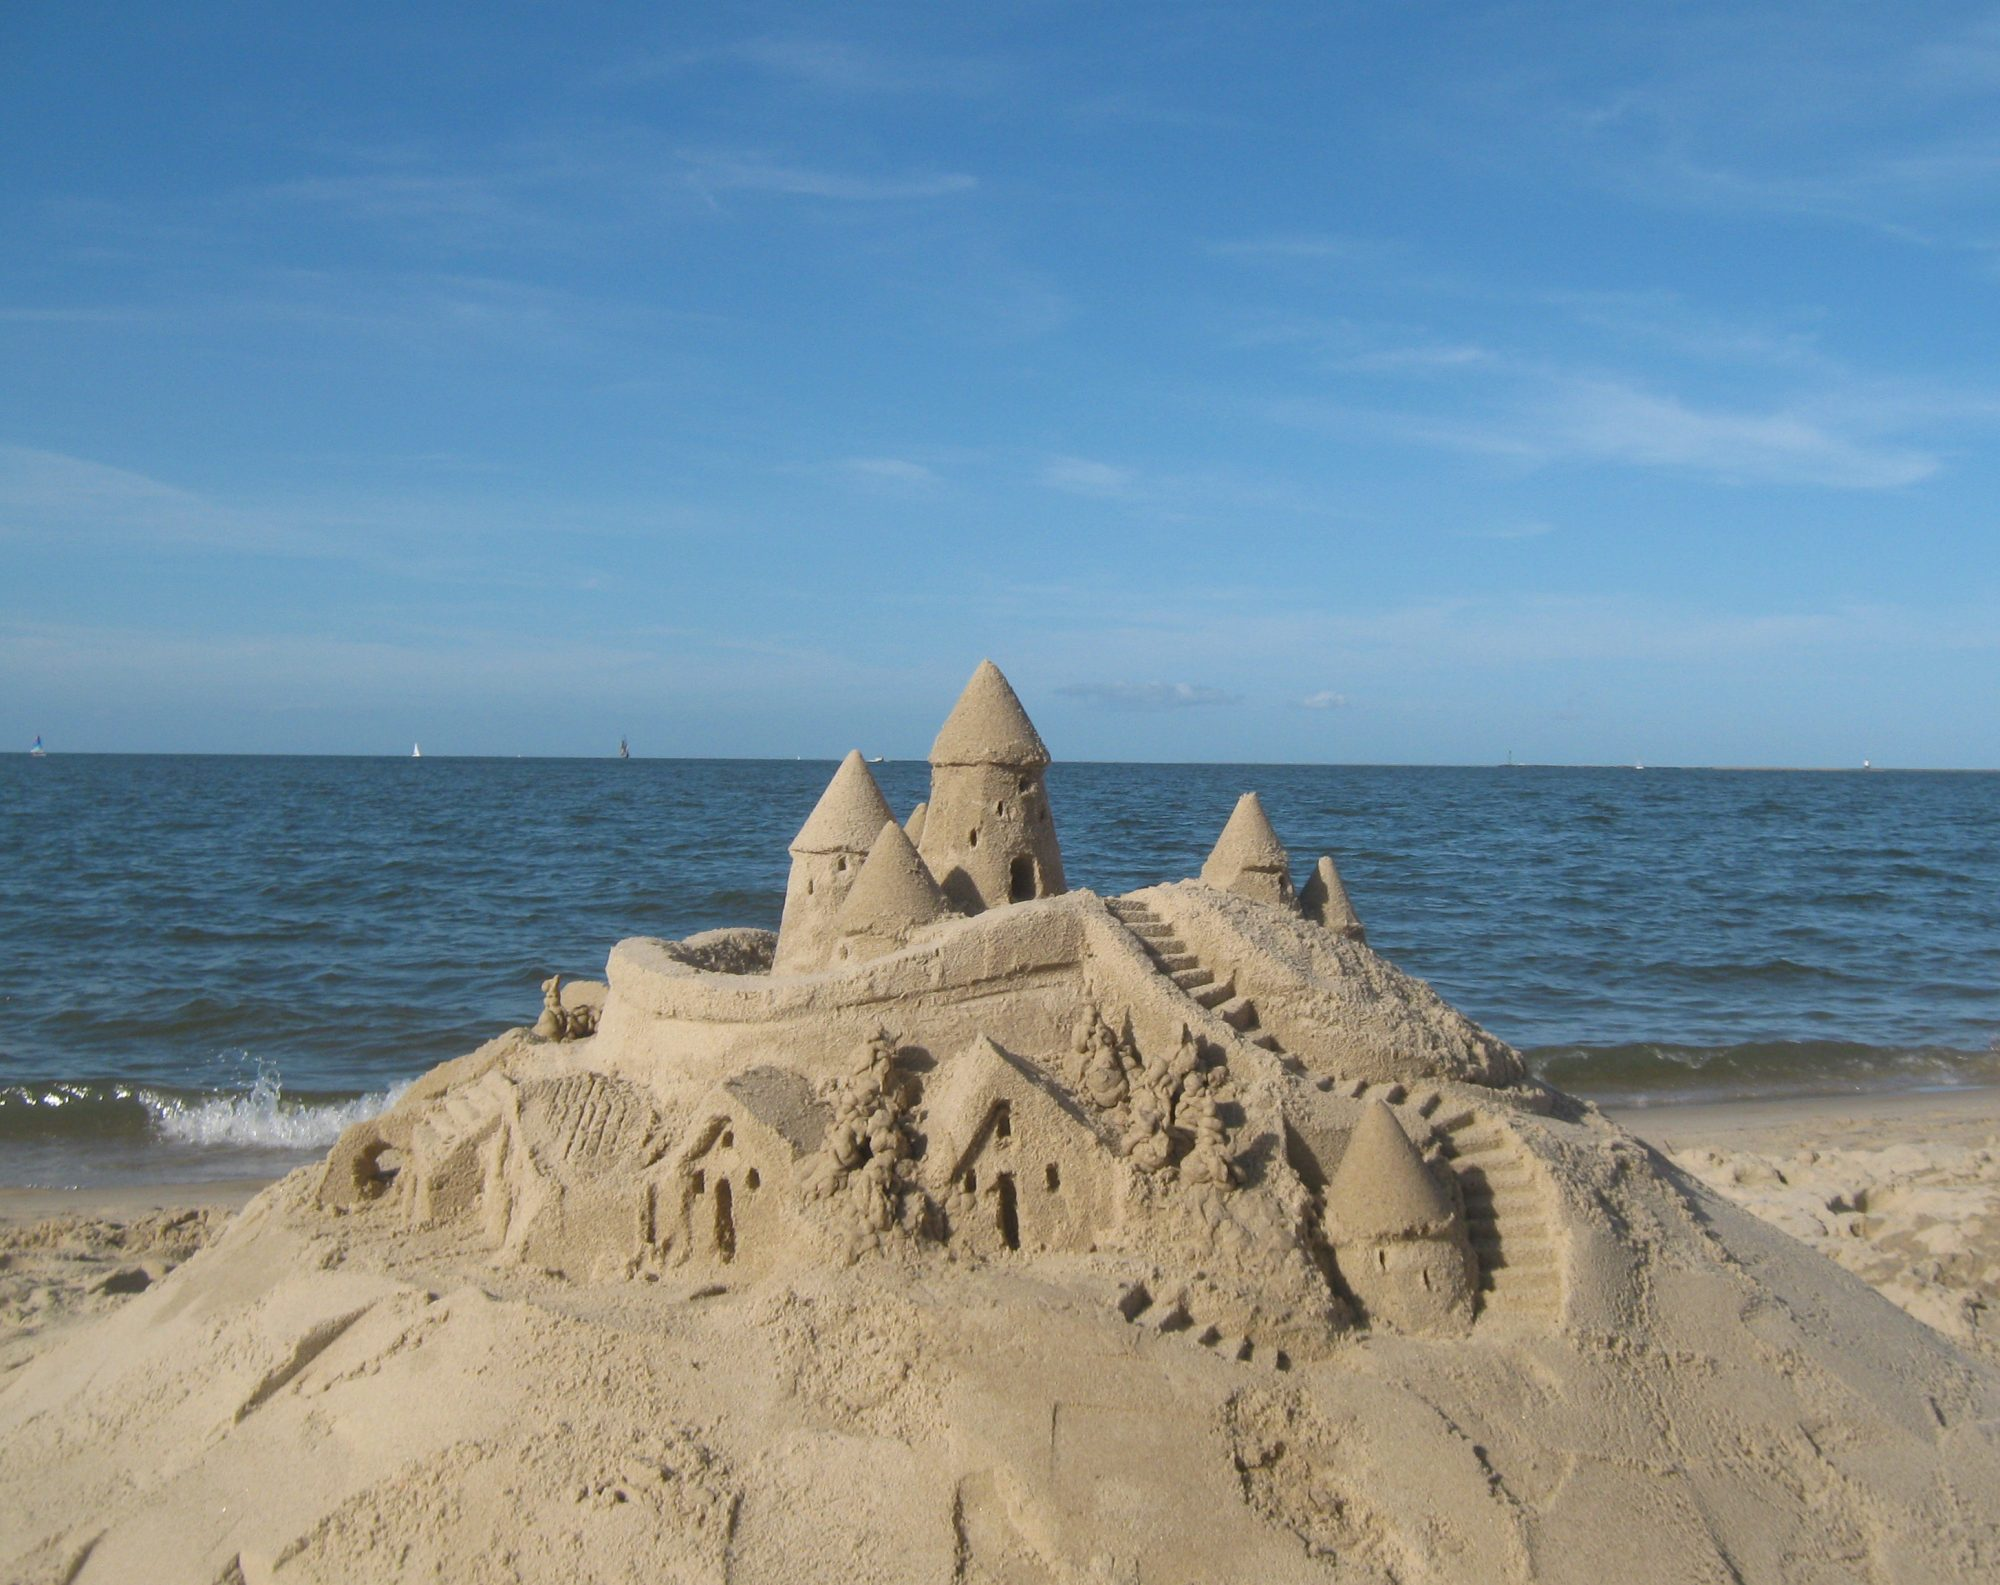 The Sandcastle Lady